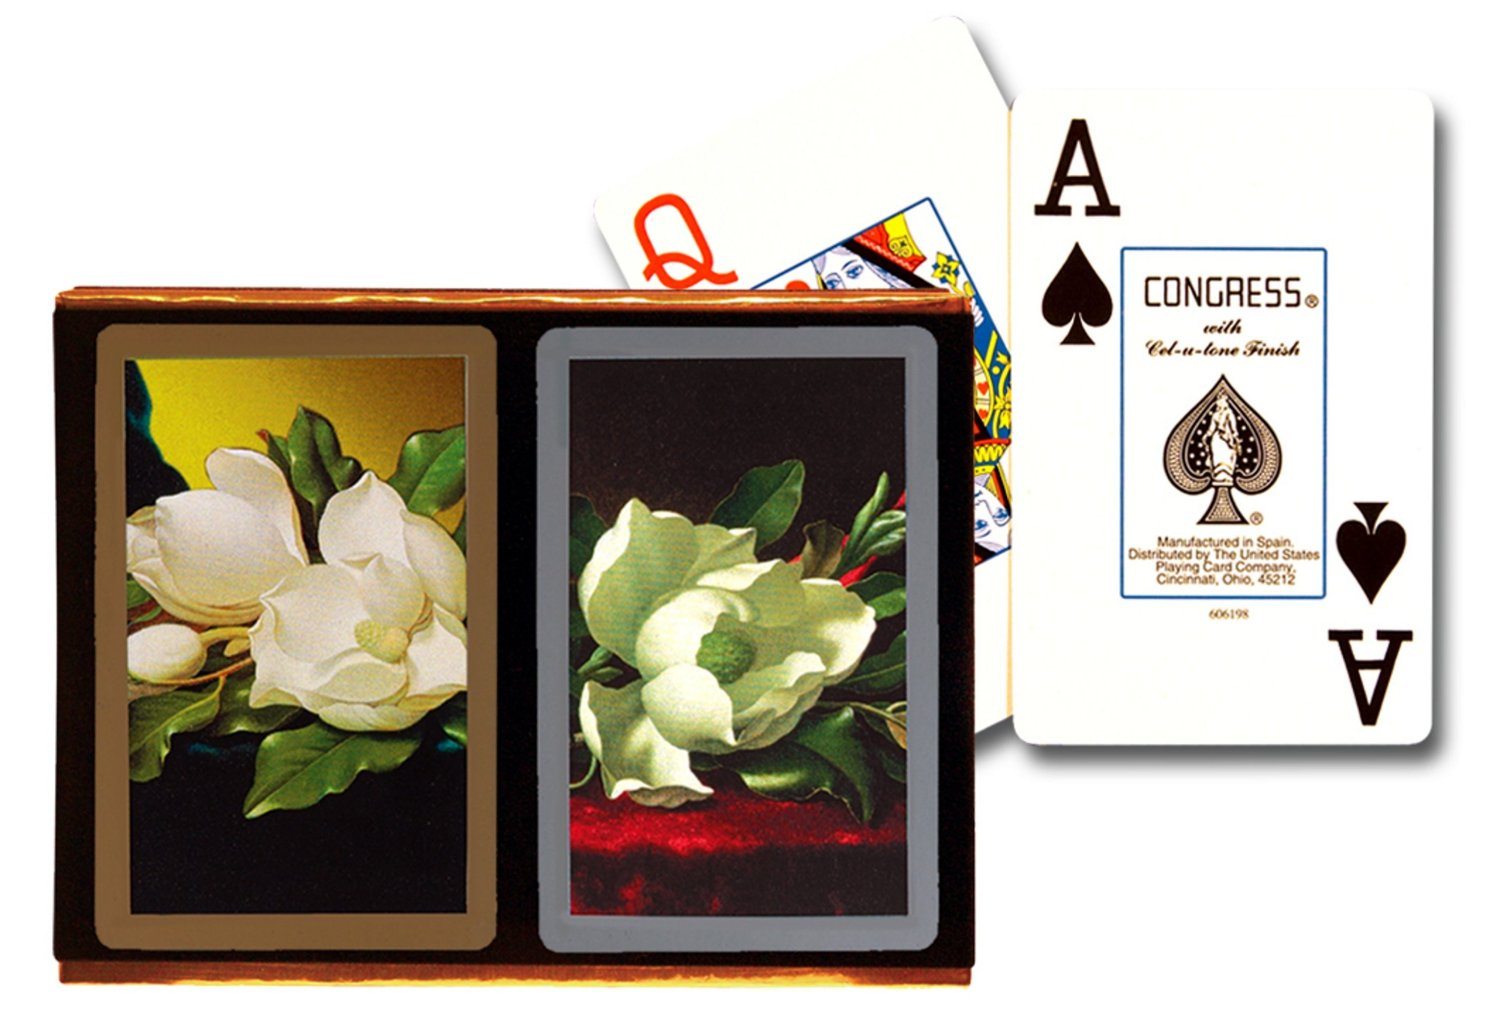 Congress Southern Charm Jumbo Index Playing Cards congress bridge cards